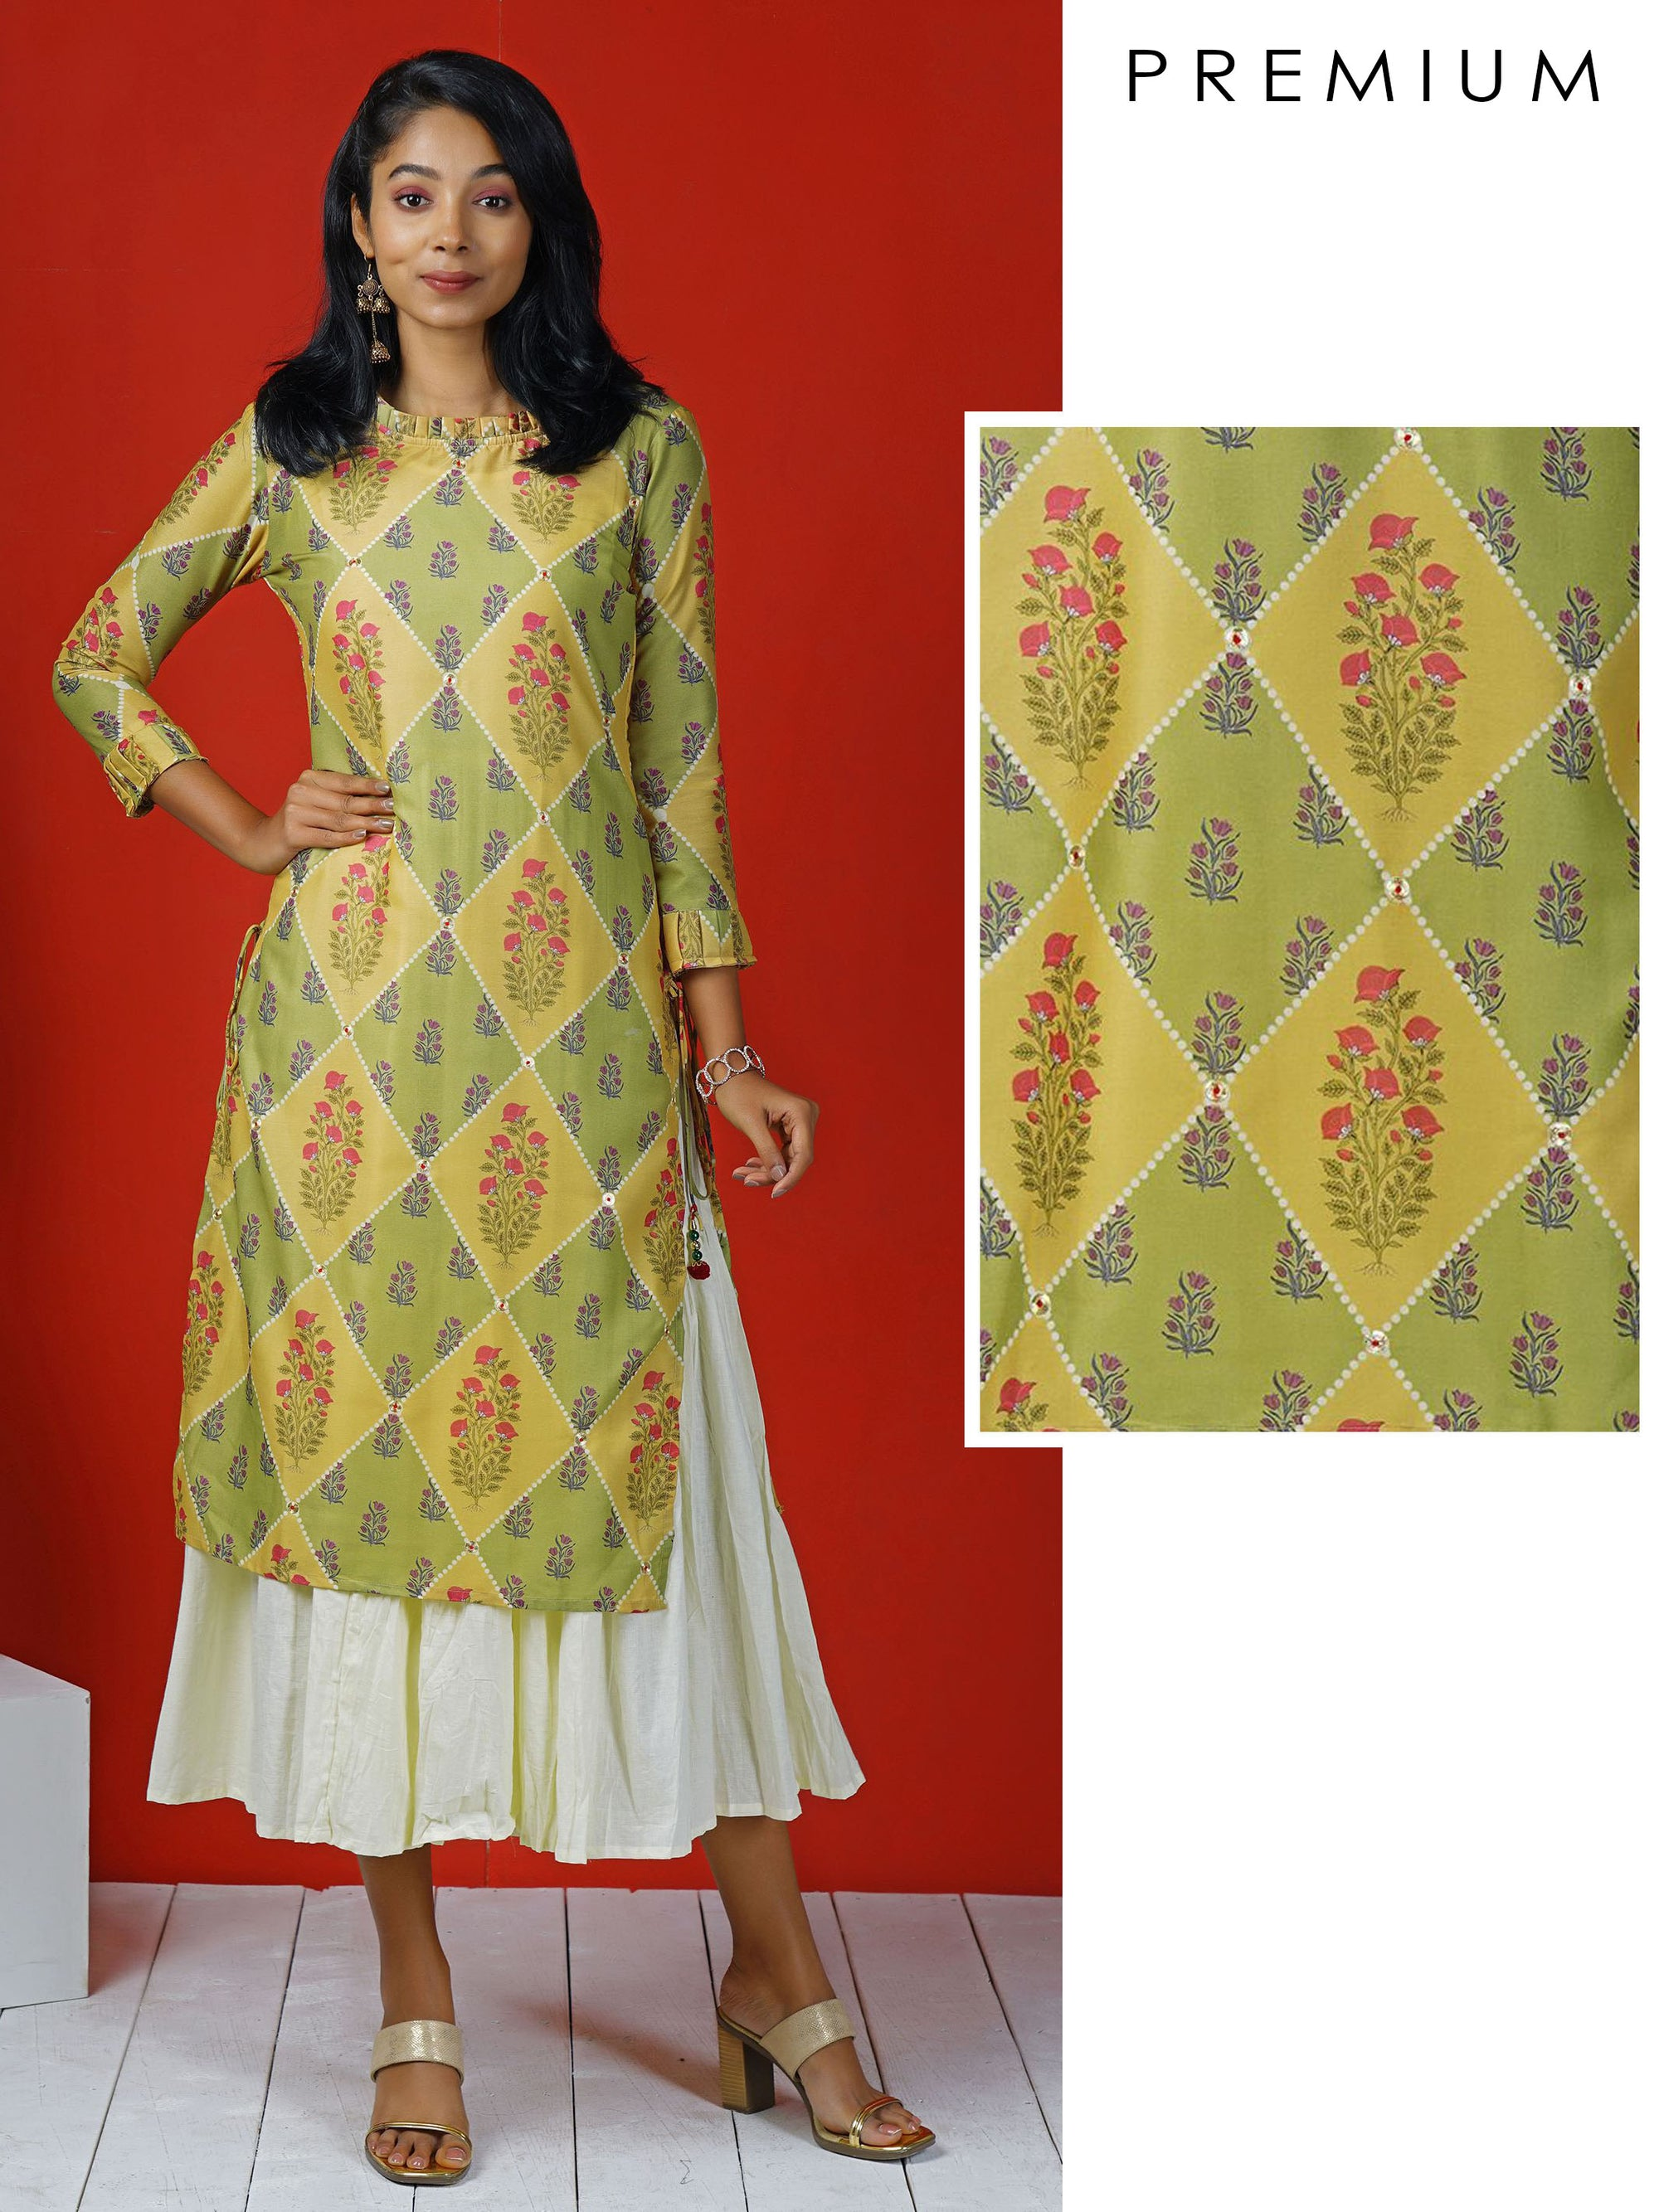 Geometric Floral Printed, Embroidered & Layered Kurta